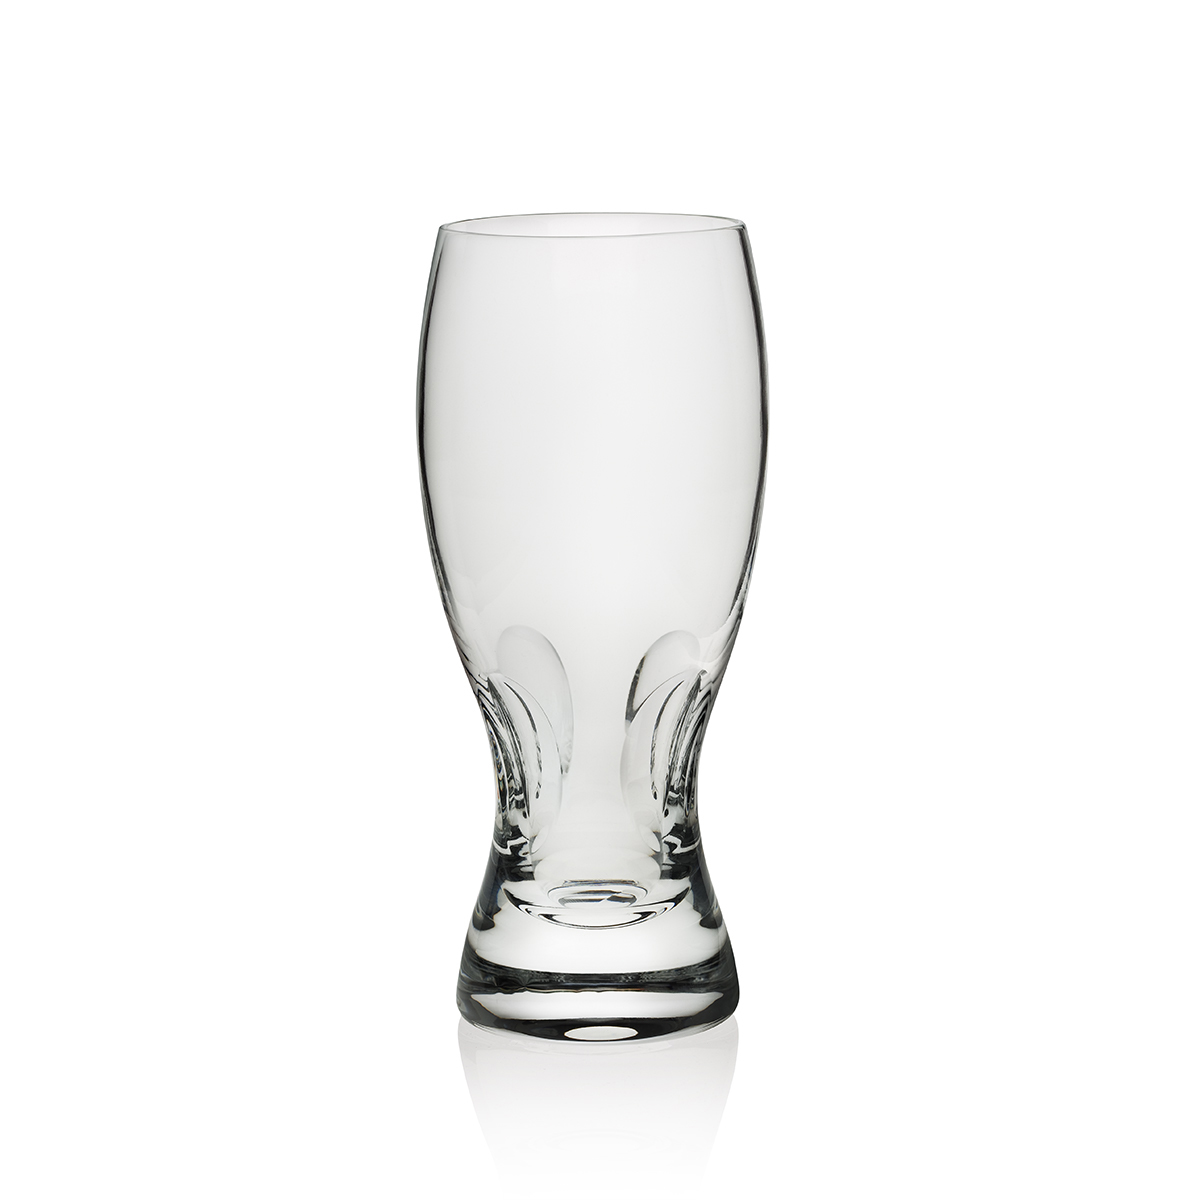 Steuben Verve Pilsner Glass, Single